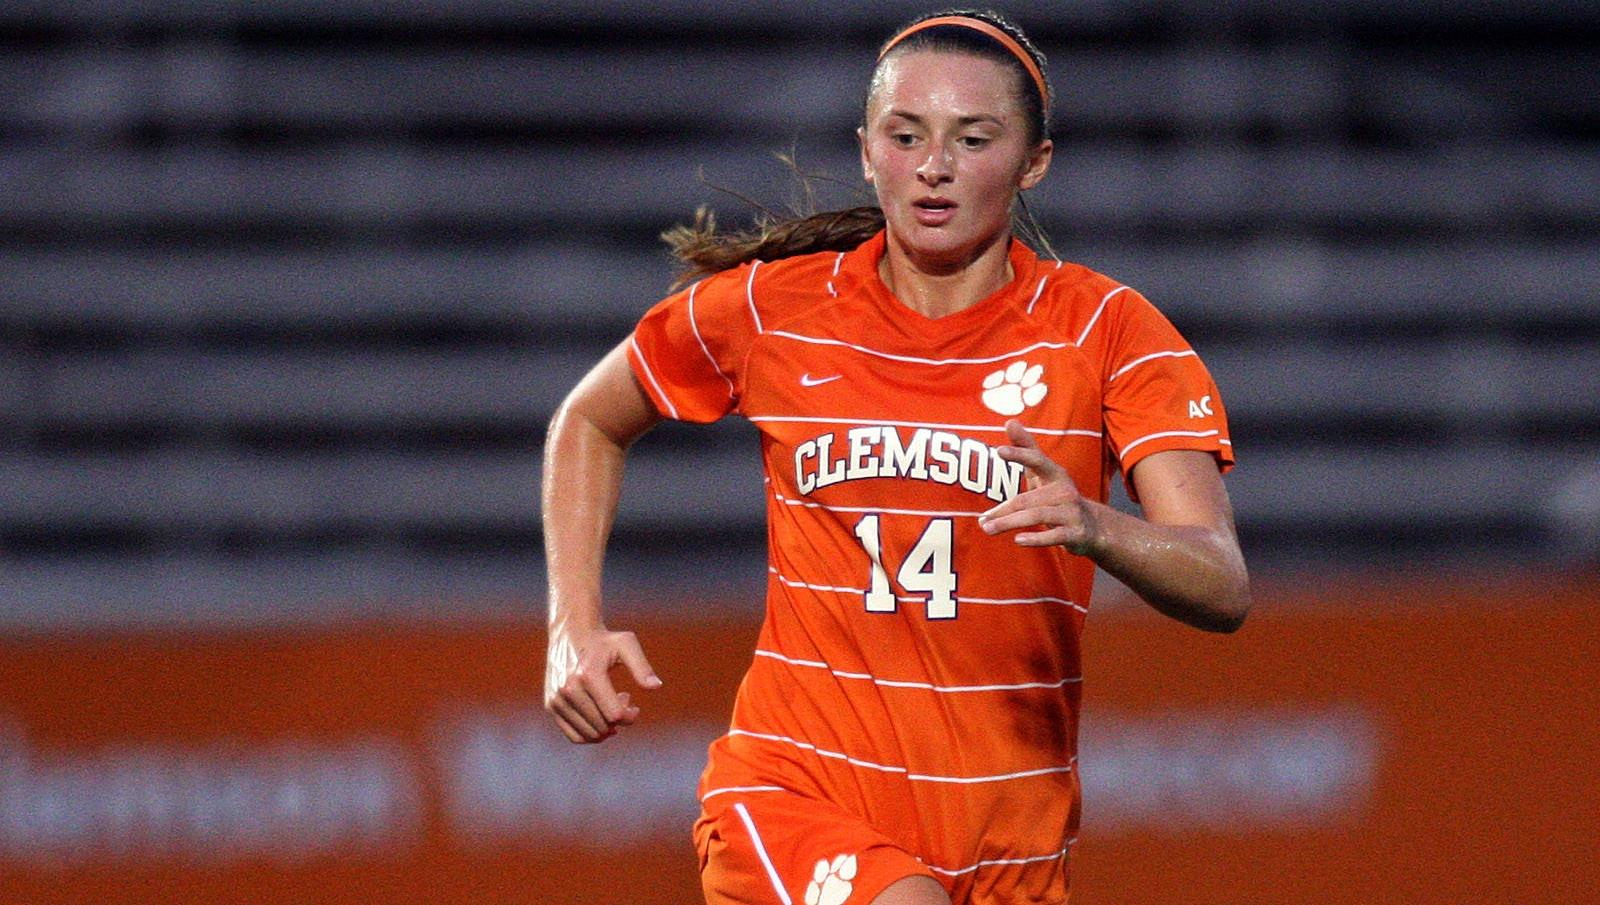 Clemson Women's Soccer Team Opens 2012 Season with Win over Appalachian State